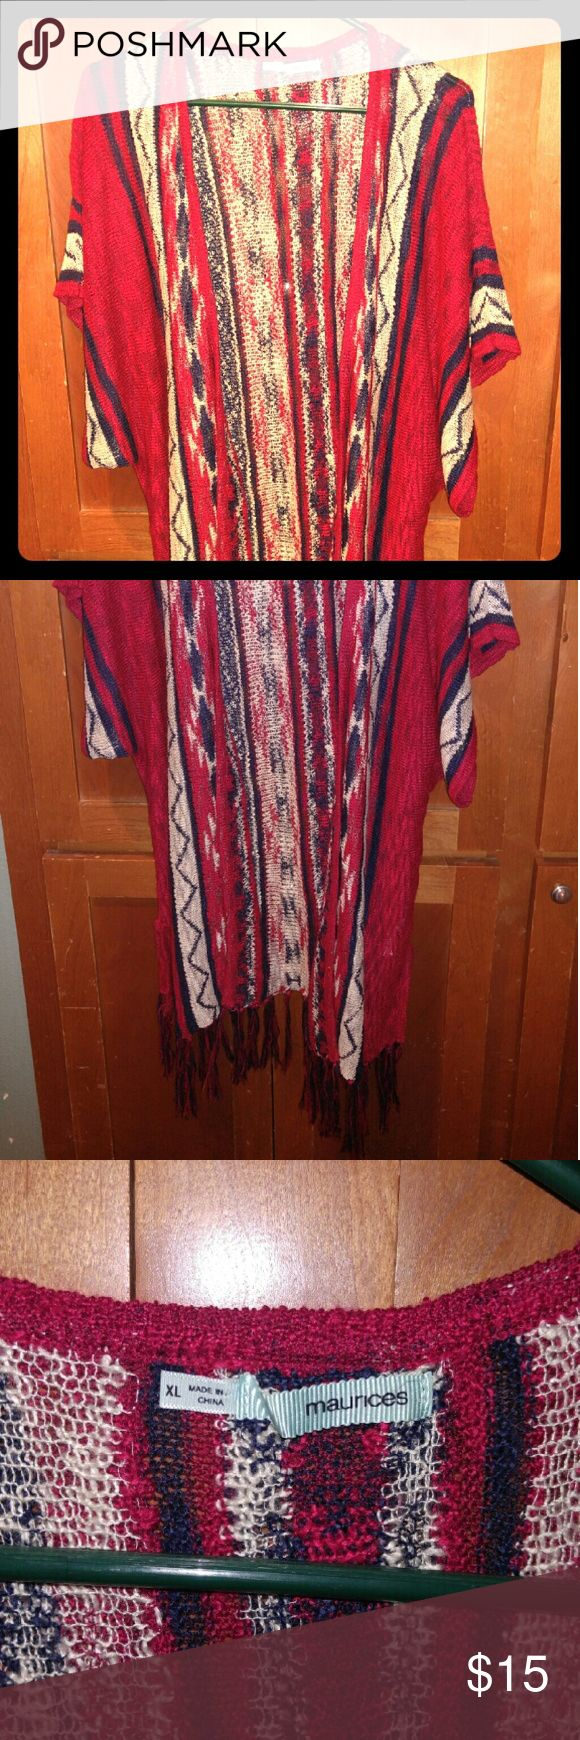 Very Cute Tribal Print Cardigan Sz. XL This is a super cute lightweight knit cardigan in red, blue and cream. Comes short sleeves and fringe detail at hemline. Sz. XL. Maurices Sweaters Cardigans